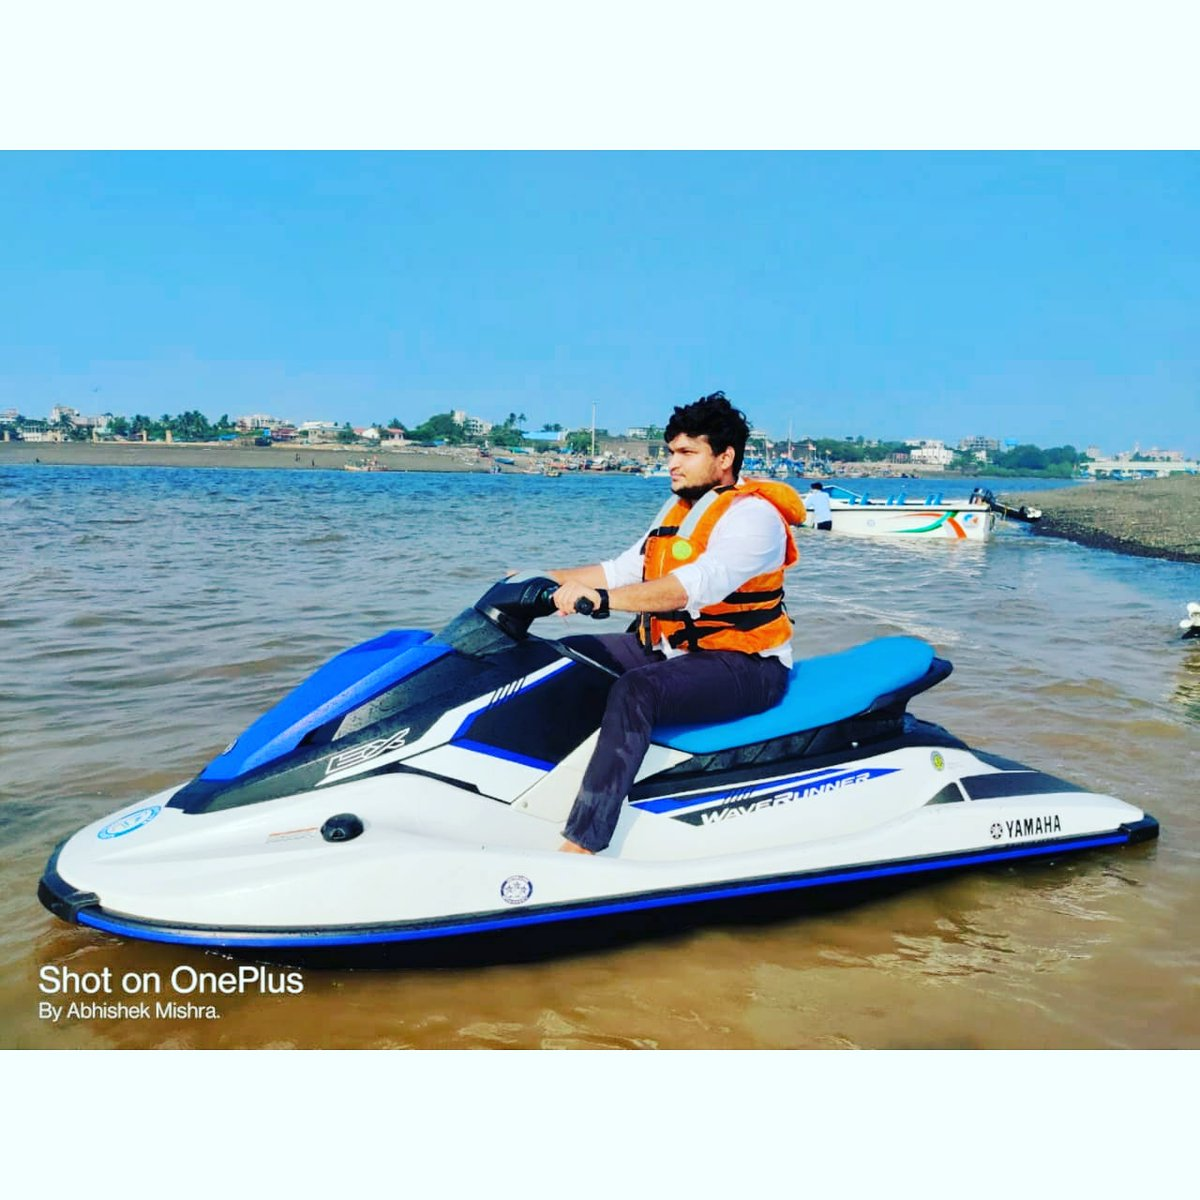 Let the good times roll💀 #yamahajetski #jetski #aquabike #vacation #damananddiu #abhishekpetermishra https://t.co/sH41qbobnc